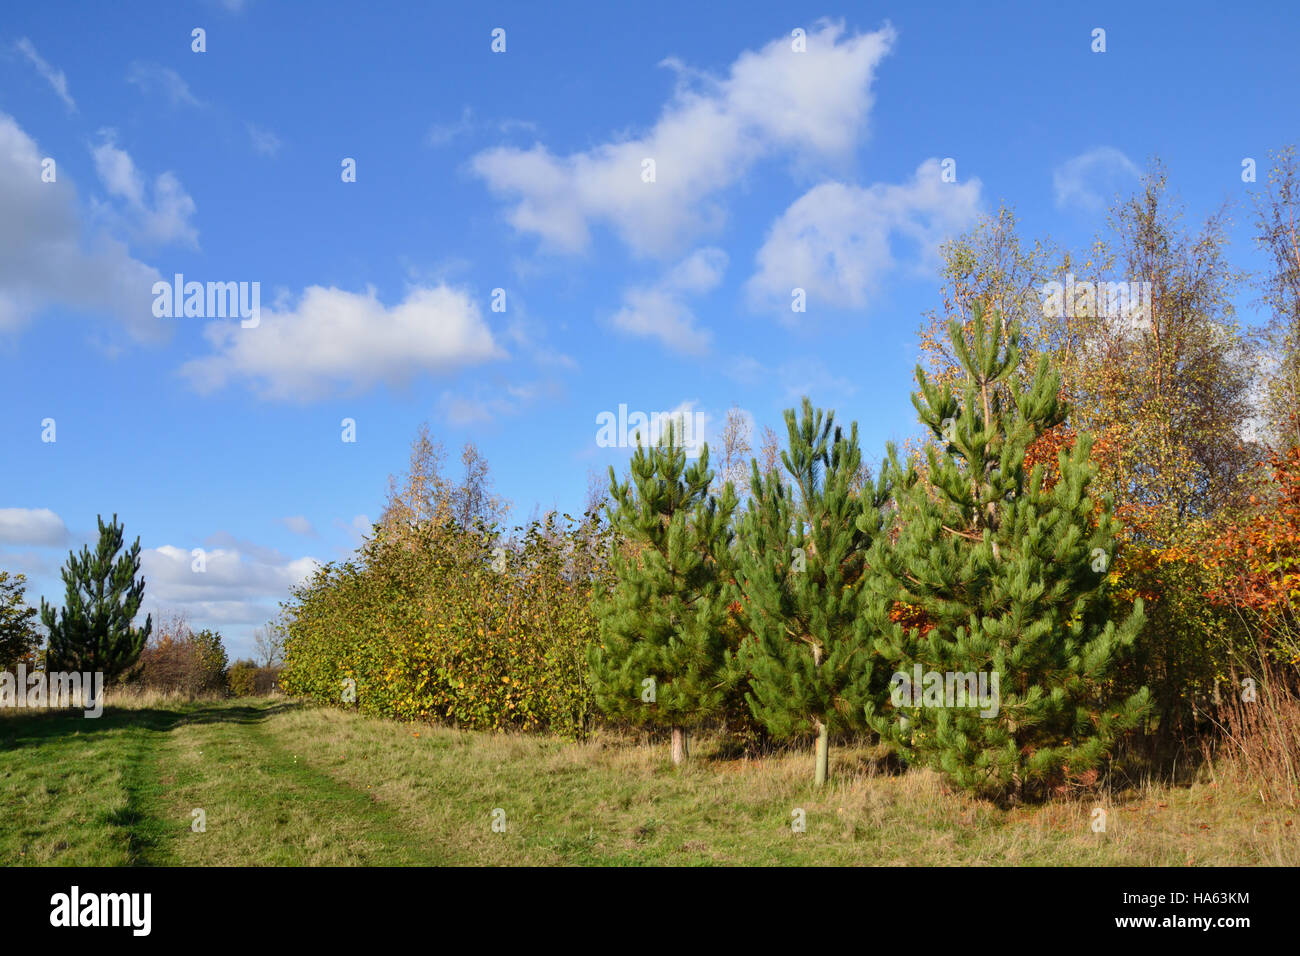 A footpath through a young plantation of coniferous and deciduous trees under a bright blue sky. Stock Photo